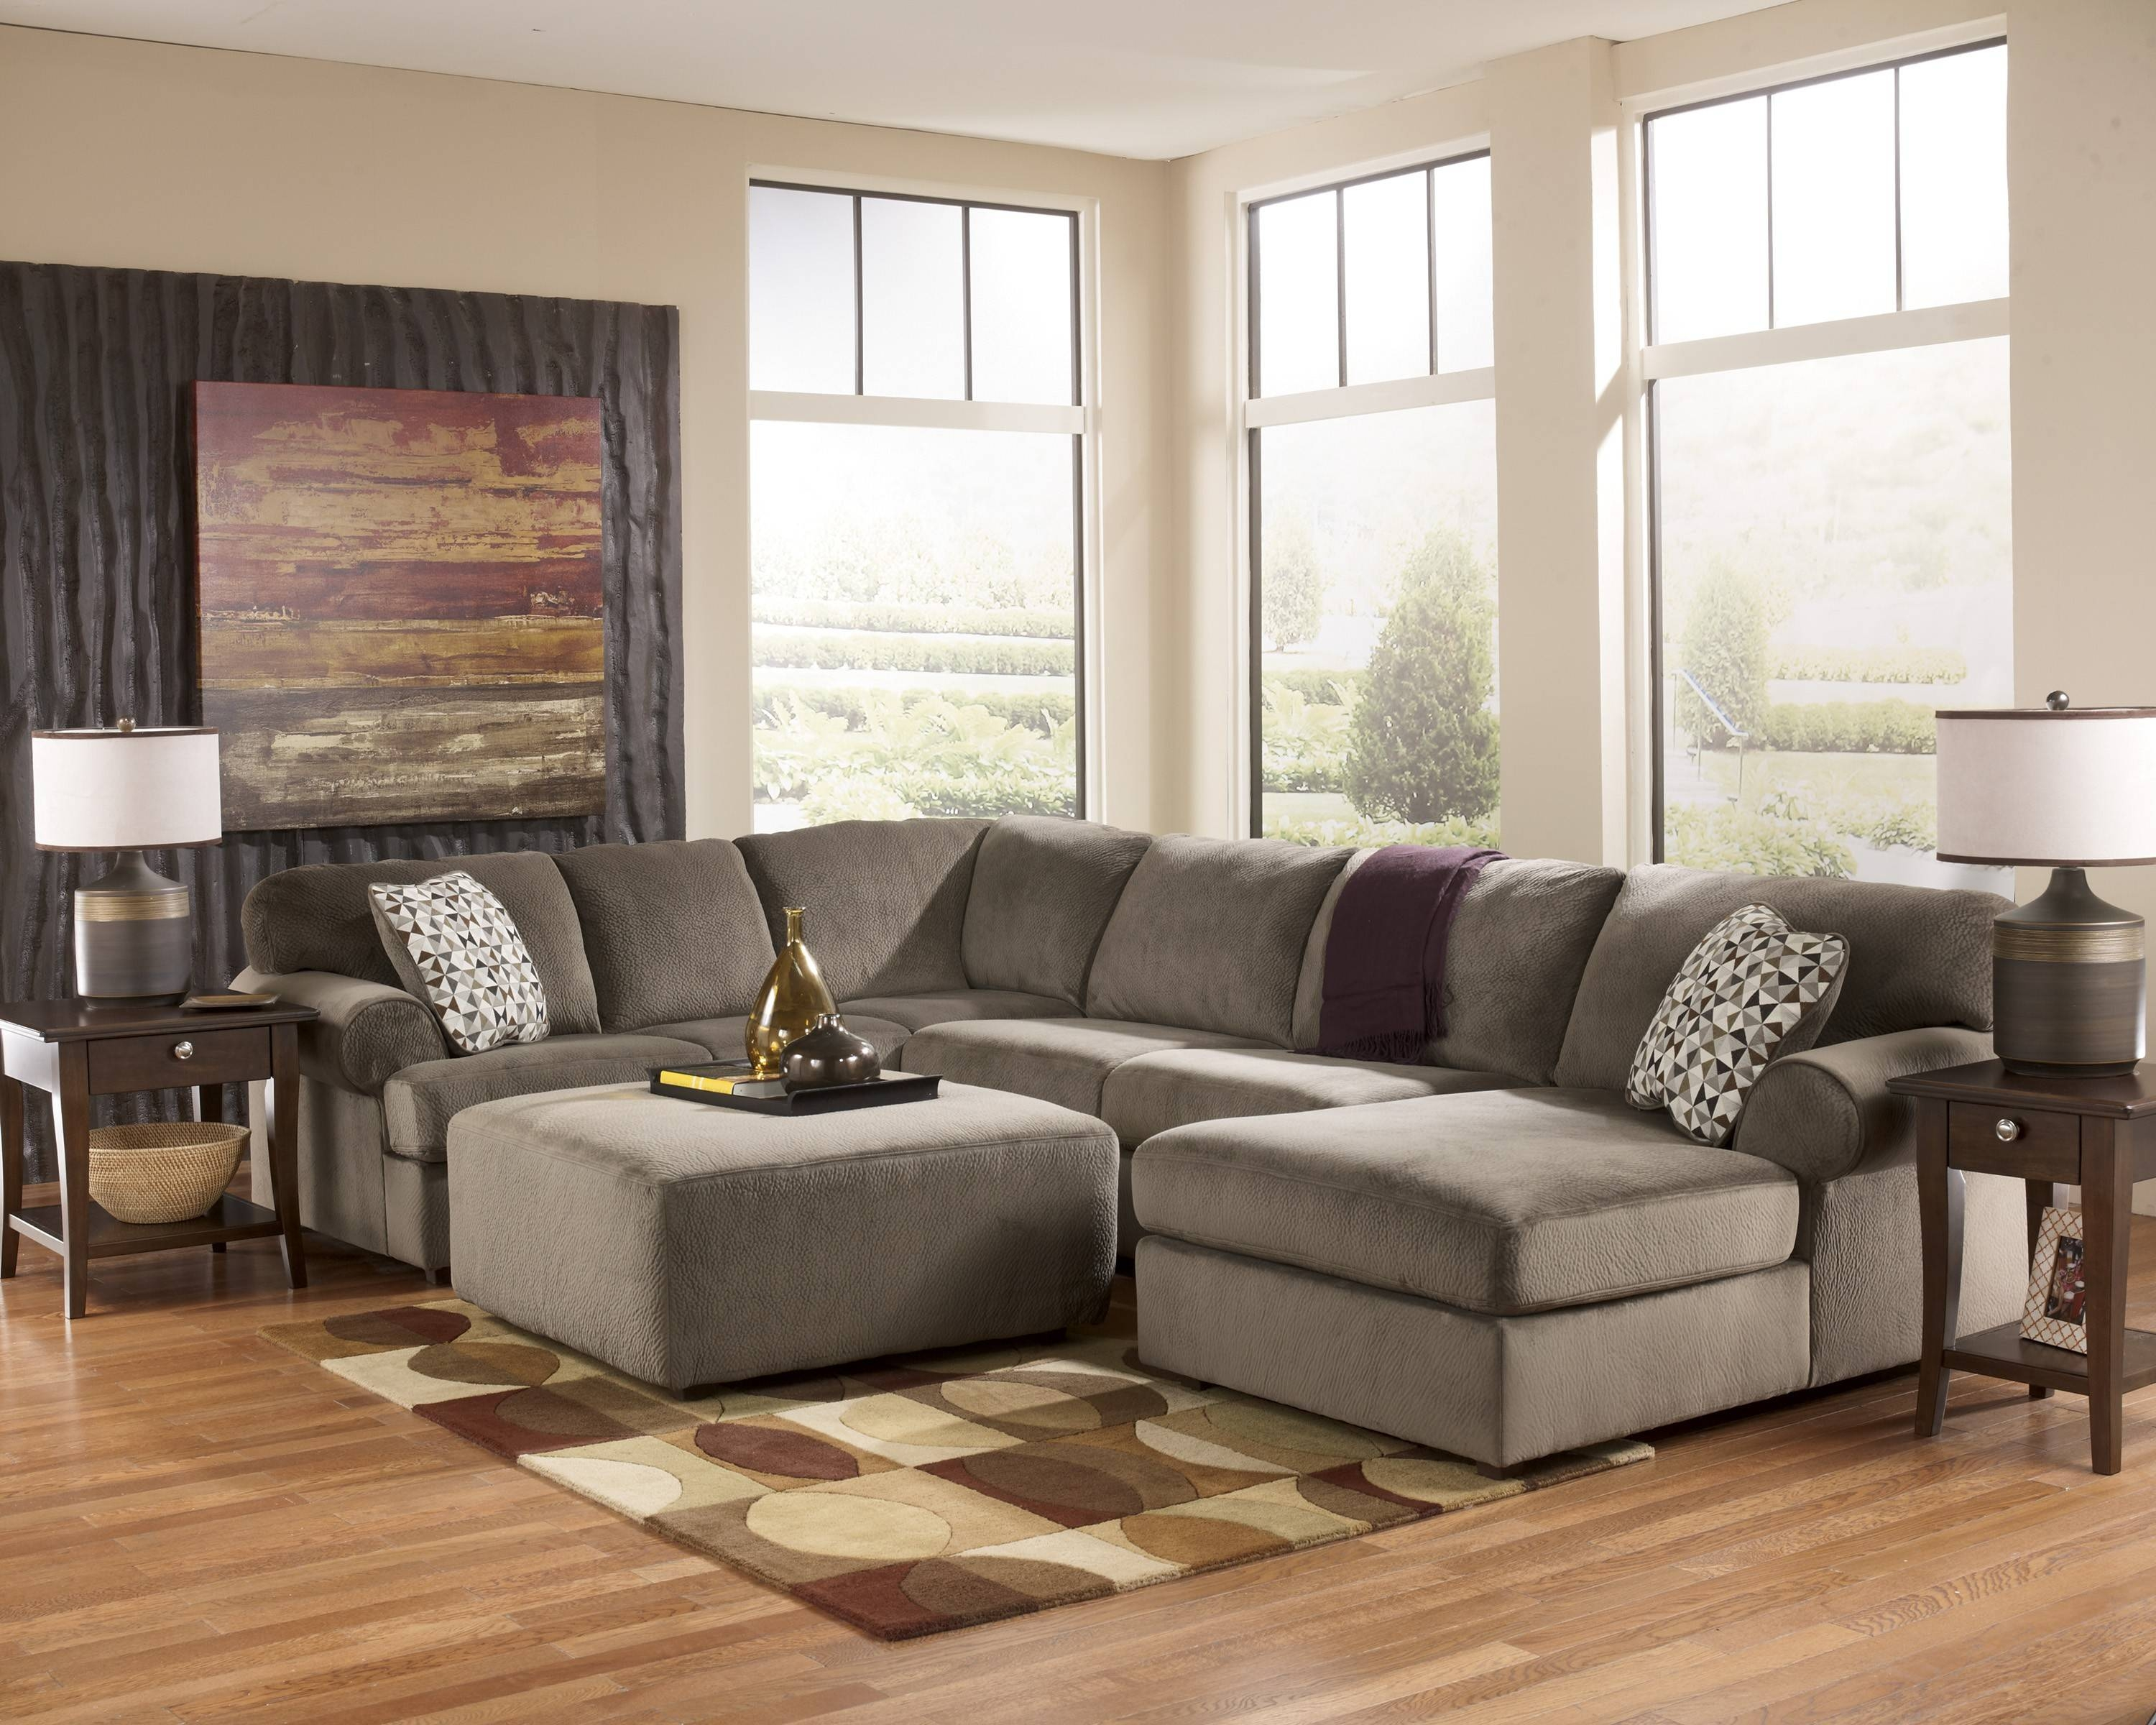 Sofas: Oversized Sofas | Sectional Sofa Bed | Oversized Sofa Chairs in Oversized Sofa Chairs (Image 15 of 15)